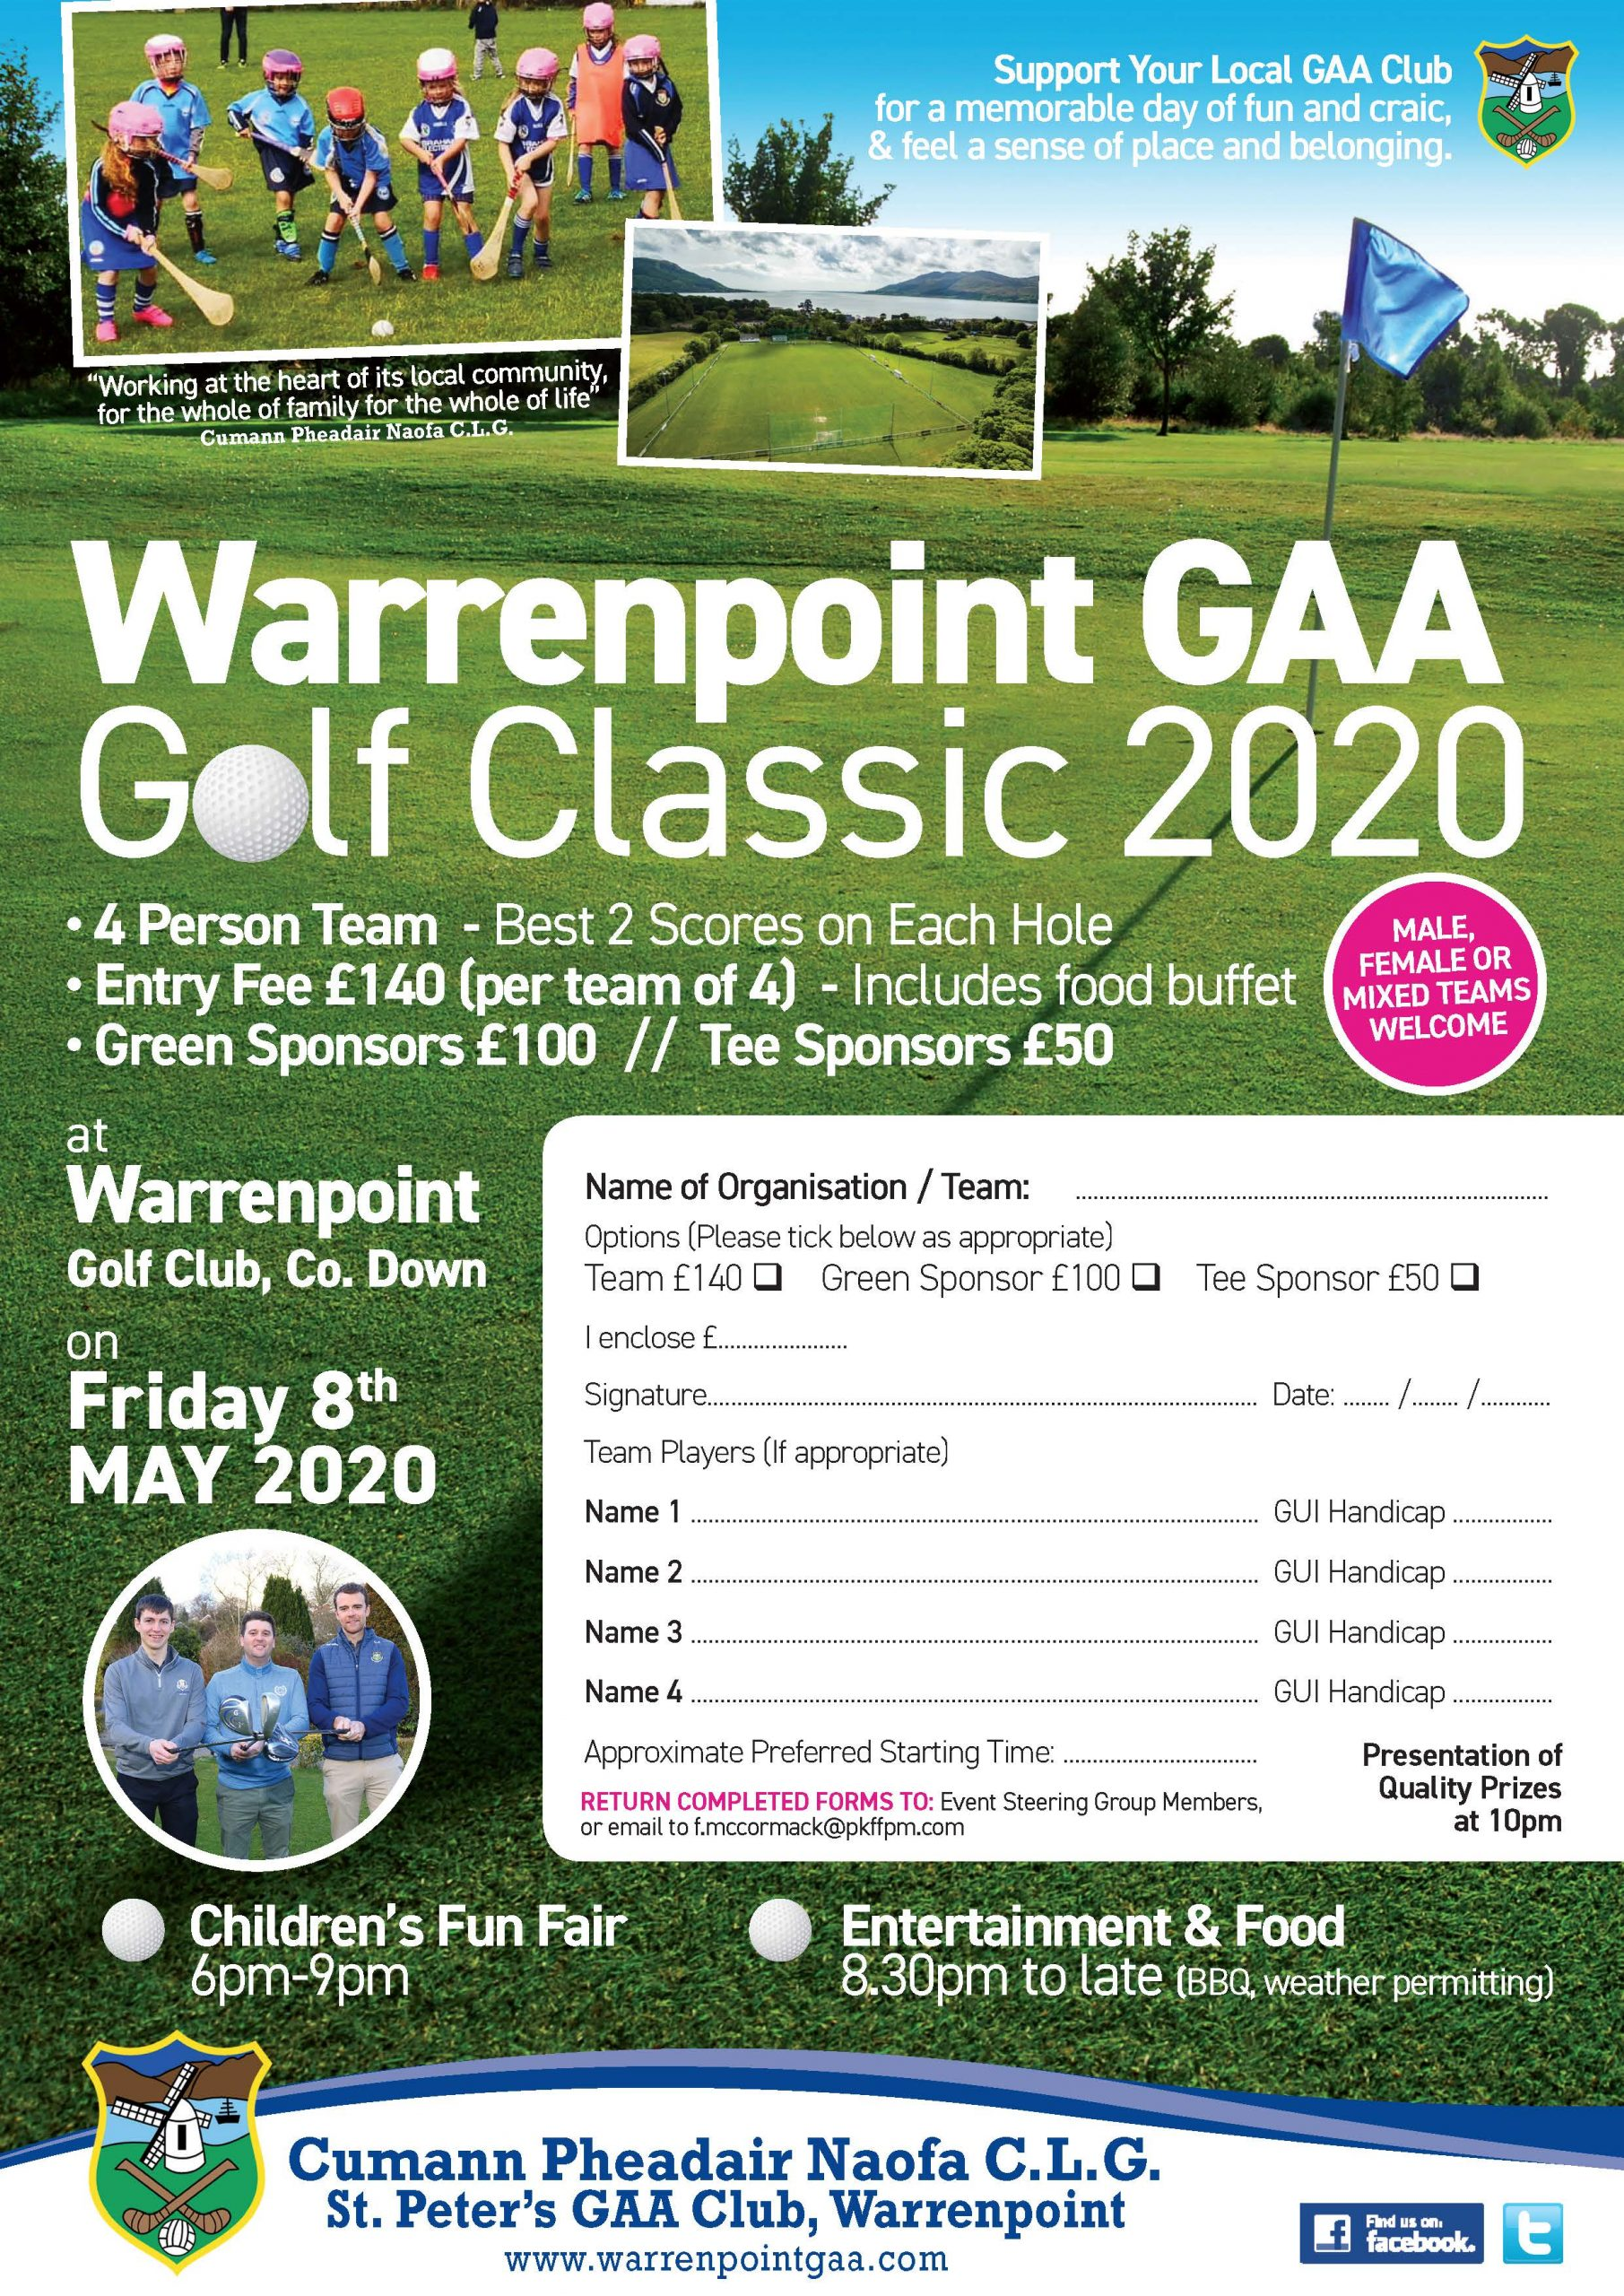 Warrenpoint GAA Golf Classic 2020